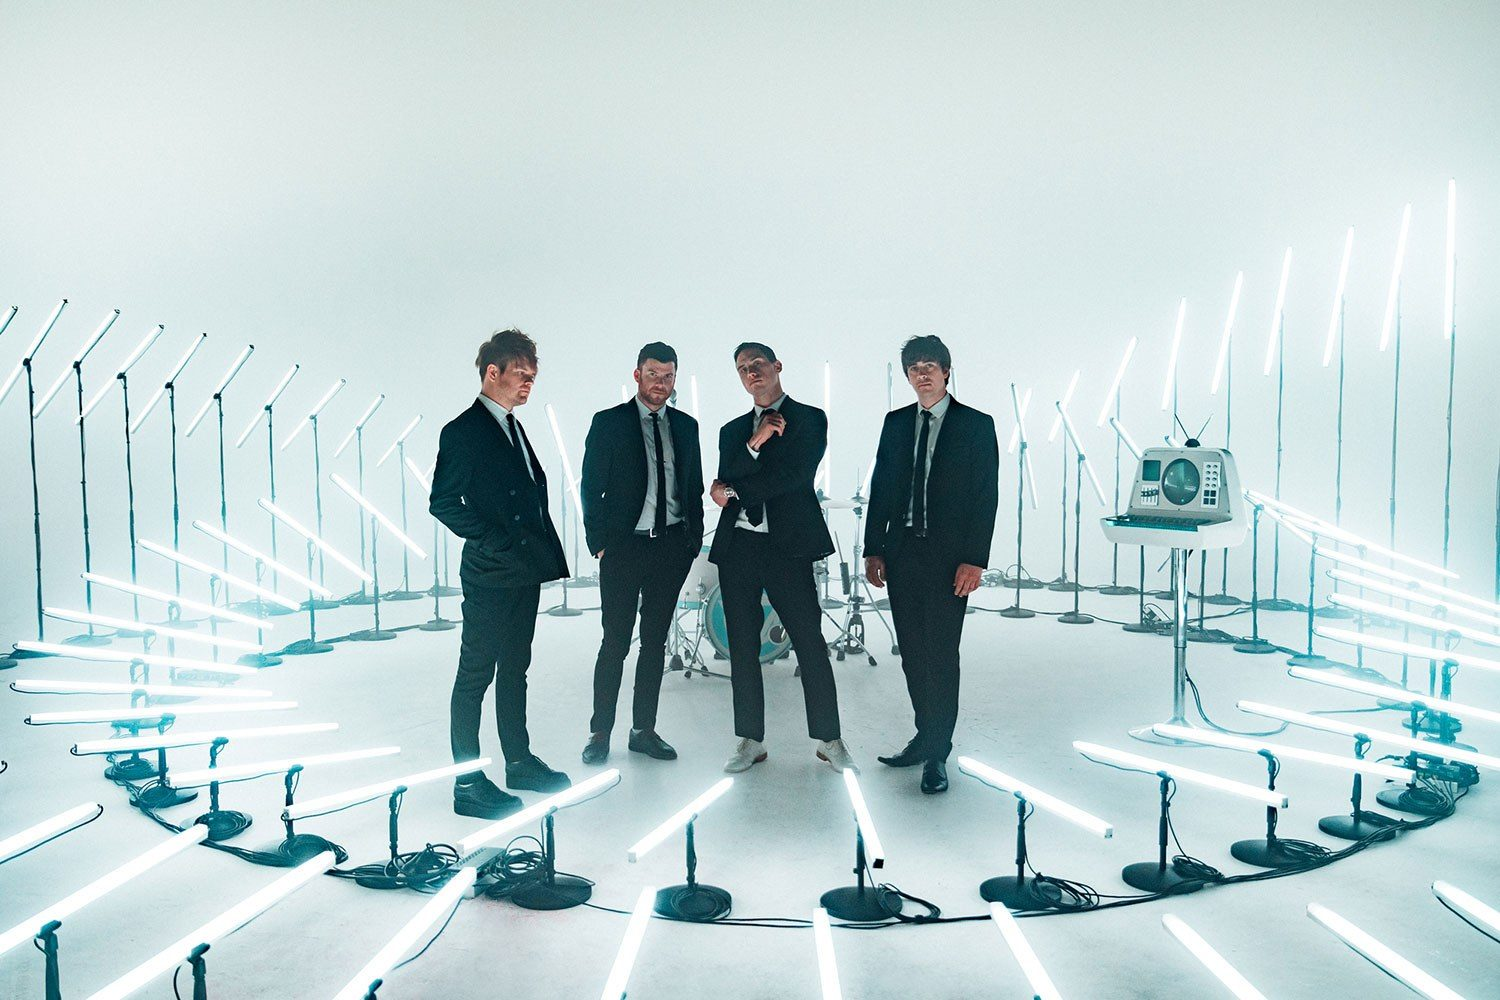 Enter Shikari have shared their new track 'Stop The Clocks' ahead of their four sets at Reading & Leeds